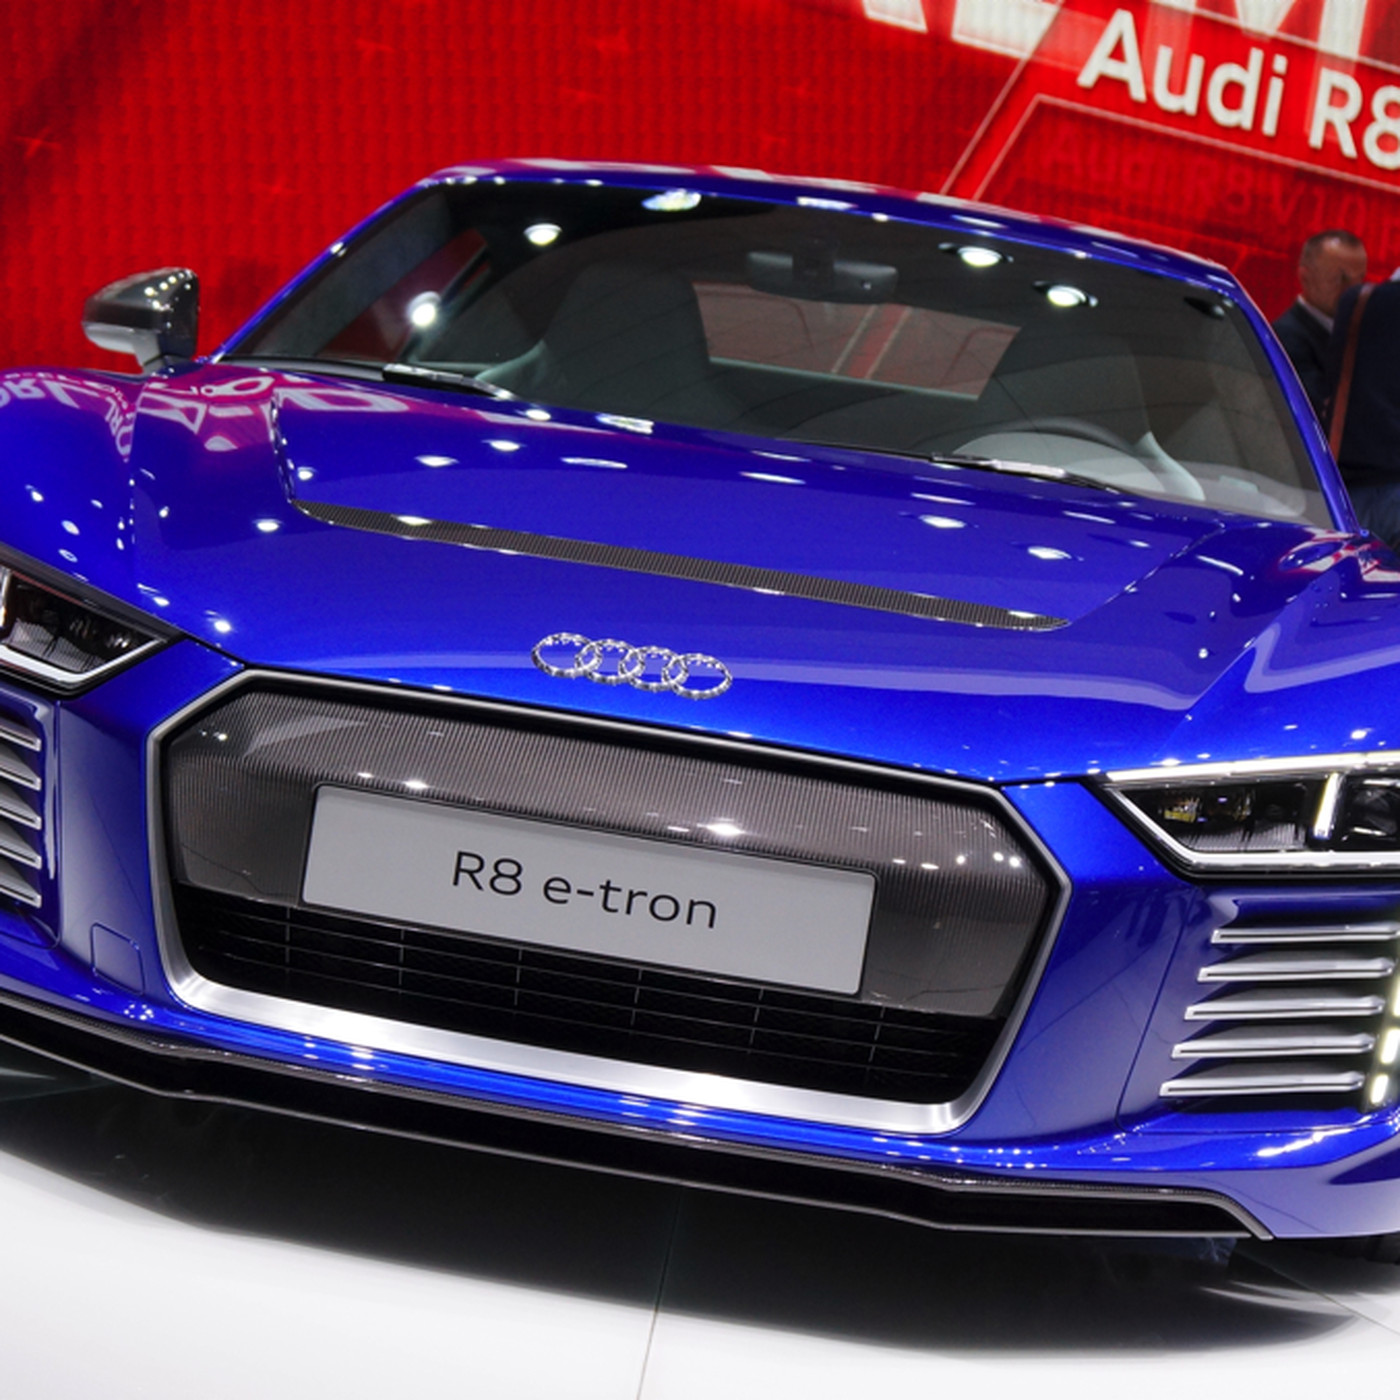 Audi S 1 Million All Electric Supercar Is No More